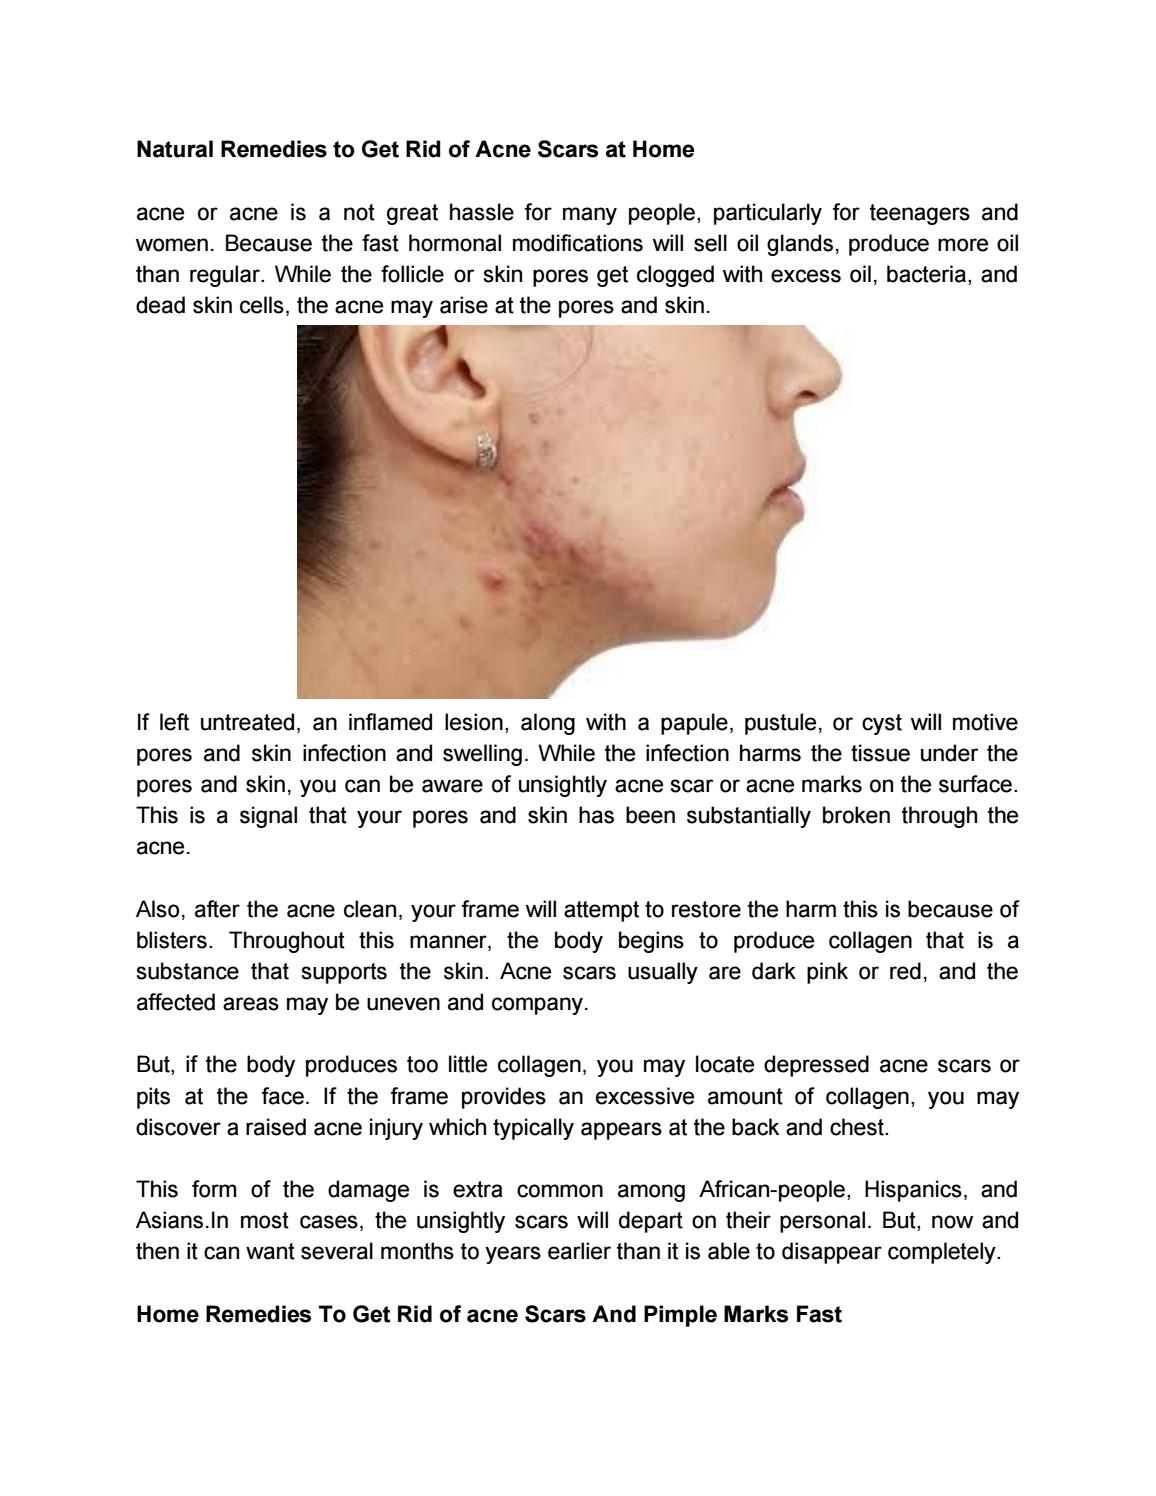 Natural Remedies To Get Rid Of Acne Scars At Home By Maryjulie321 Issuu